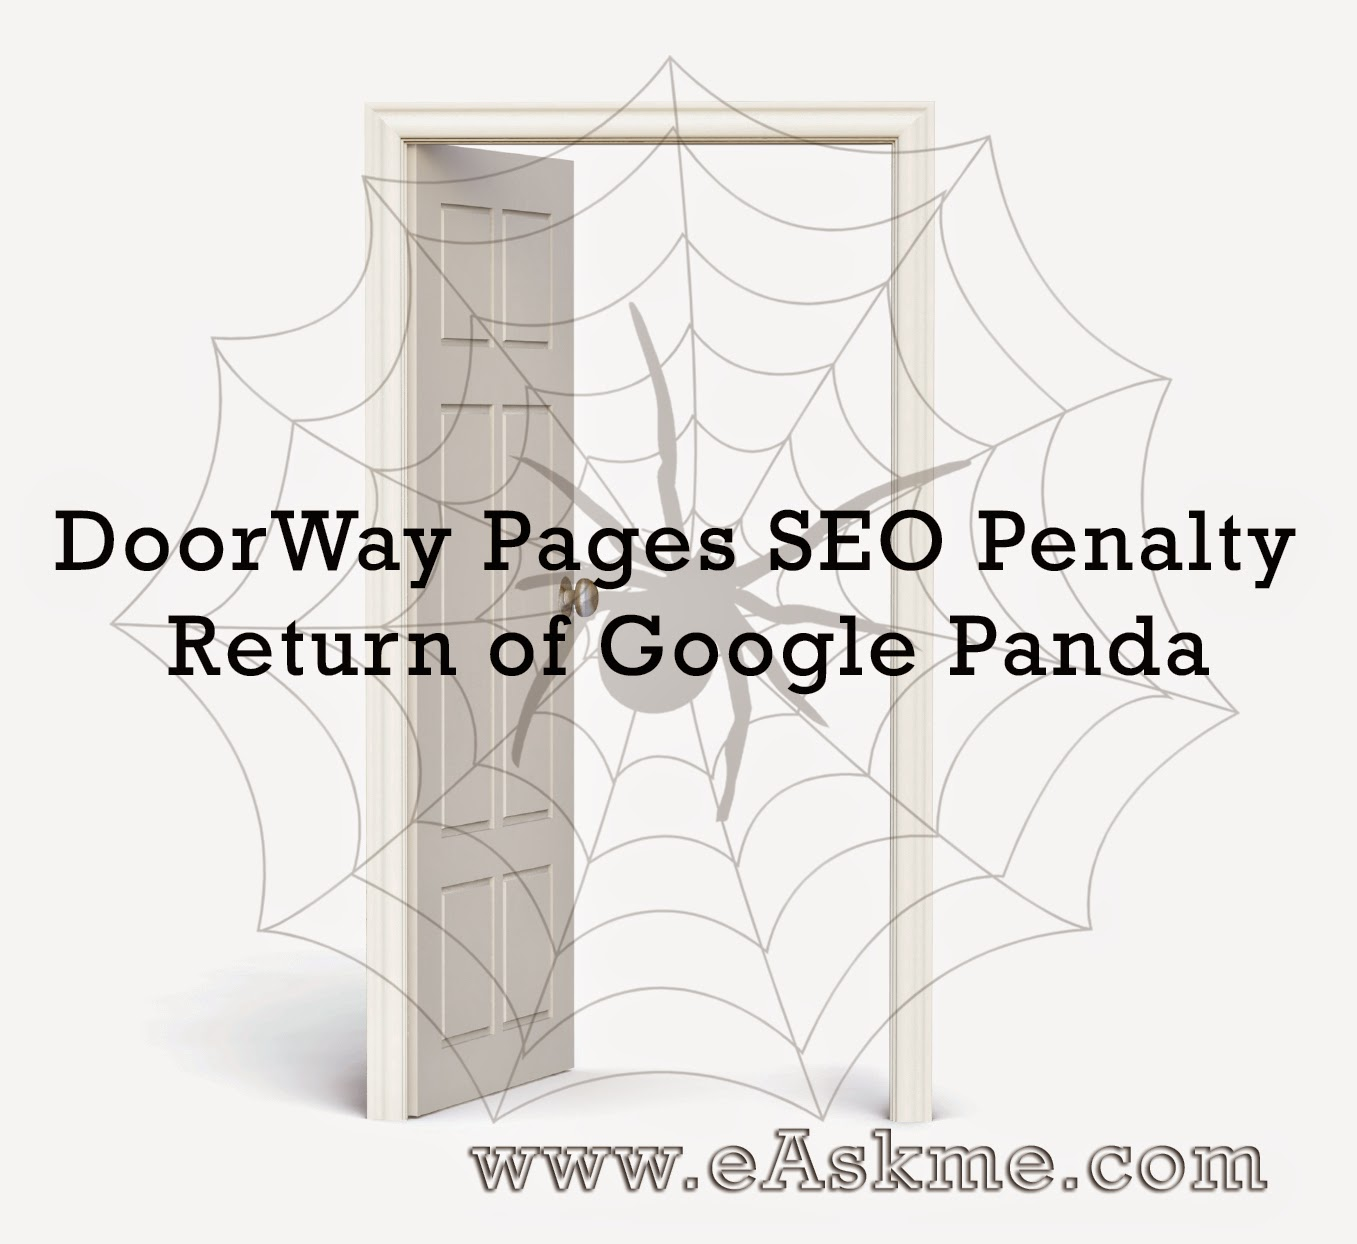 DoorWay Pages SEO Penalty – Return of Google Panda : eAskme